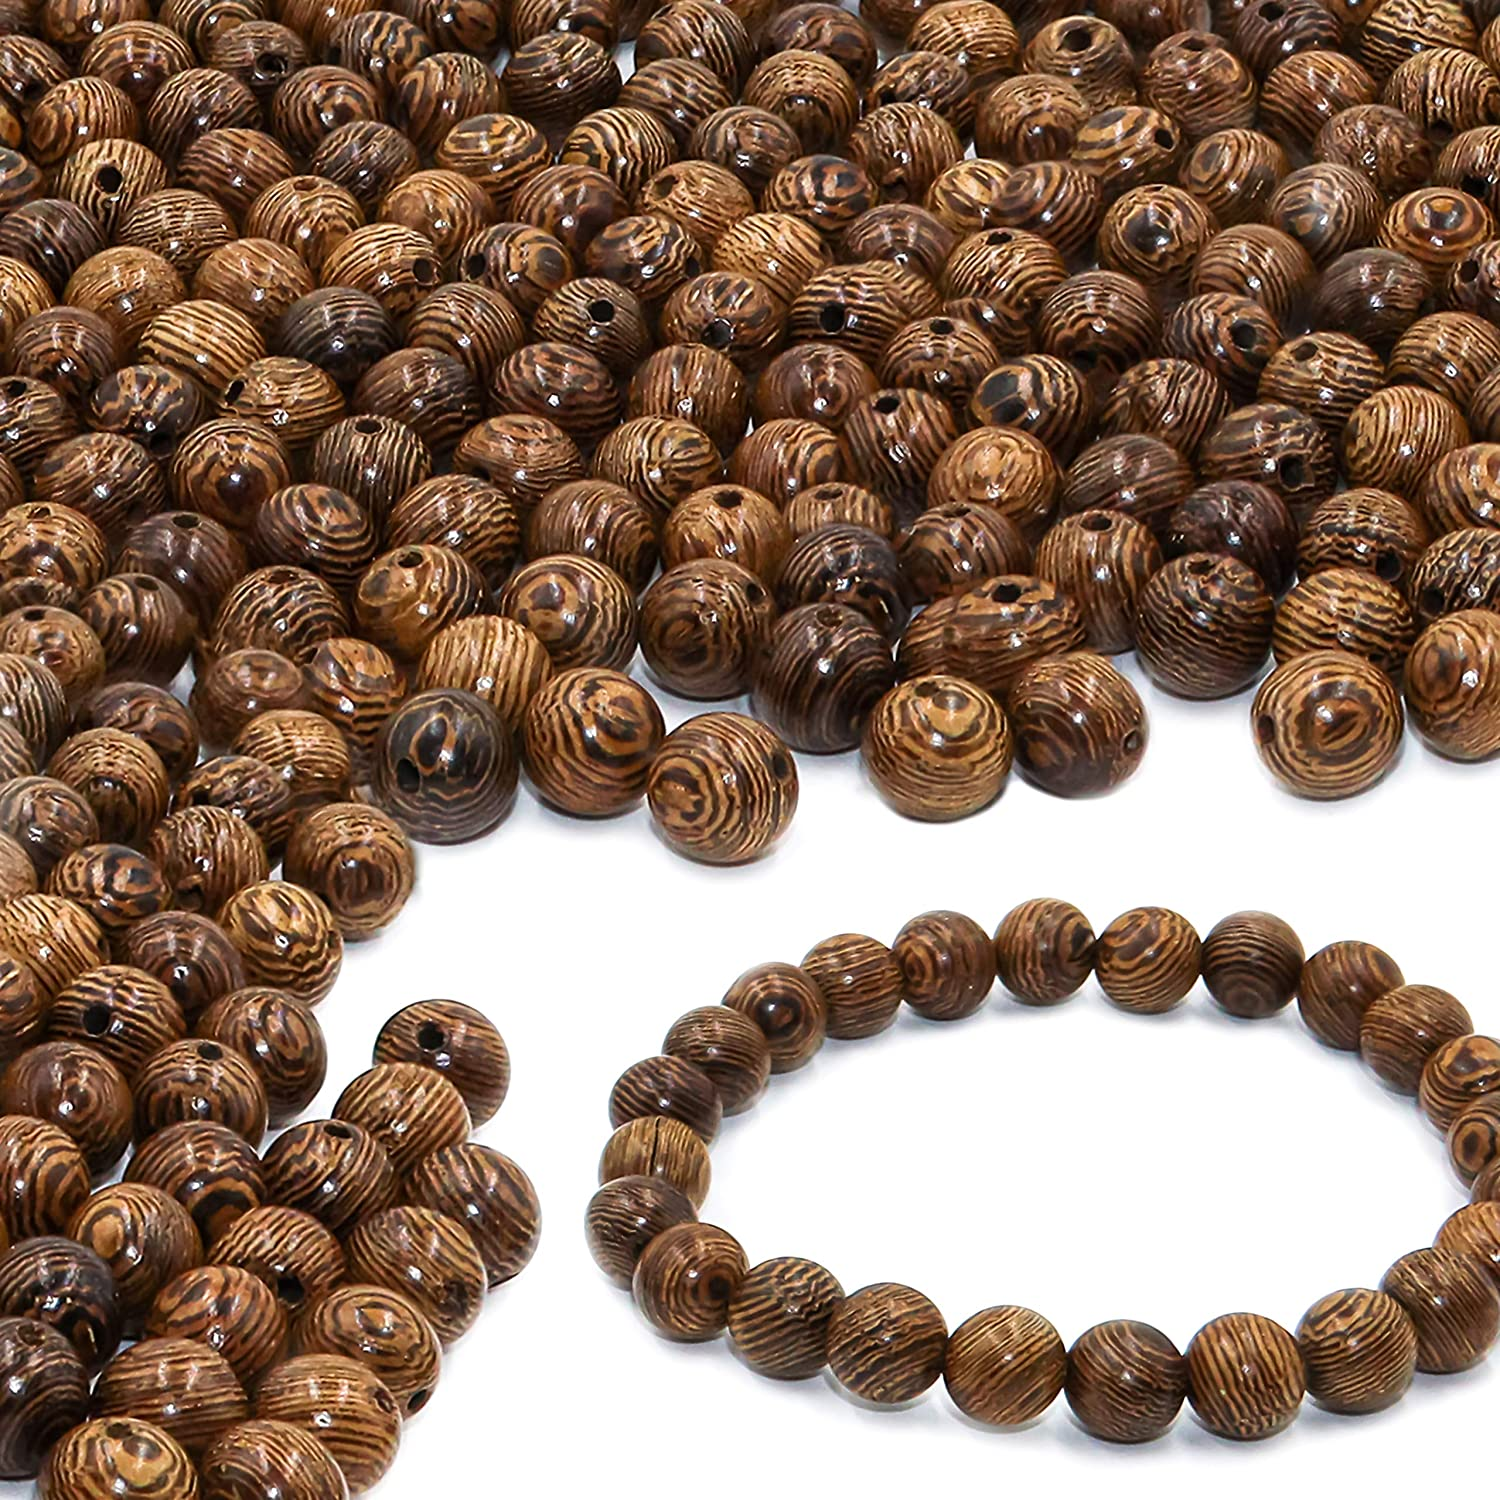 50 Pieces Mixed Dyed Color Flower Wood Beads Lovely Beads Bracelet for DIY